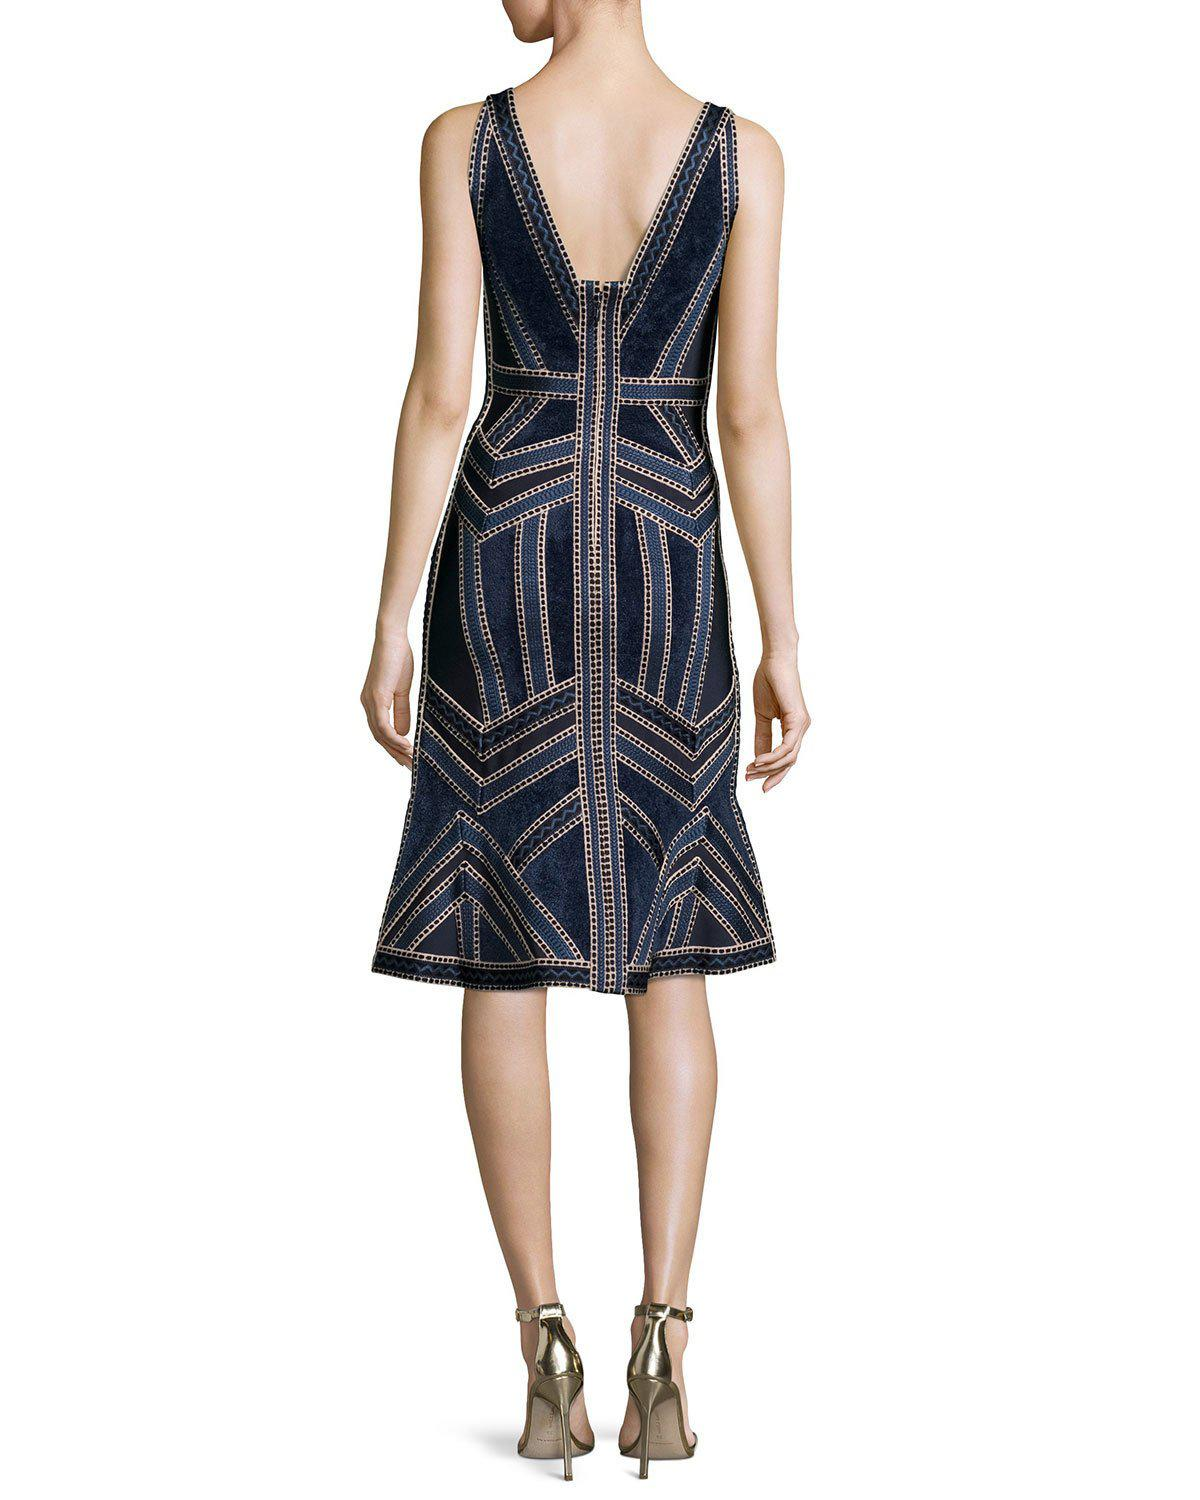 d1c47fce3268 Lyst - Hervé Léger Sleeveless Deep-v Jacquard Flounce Dress in Blue